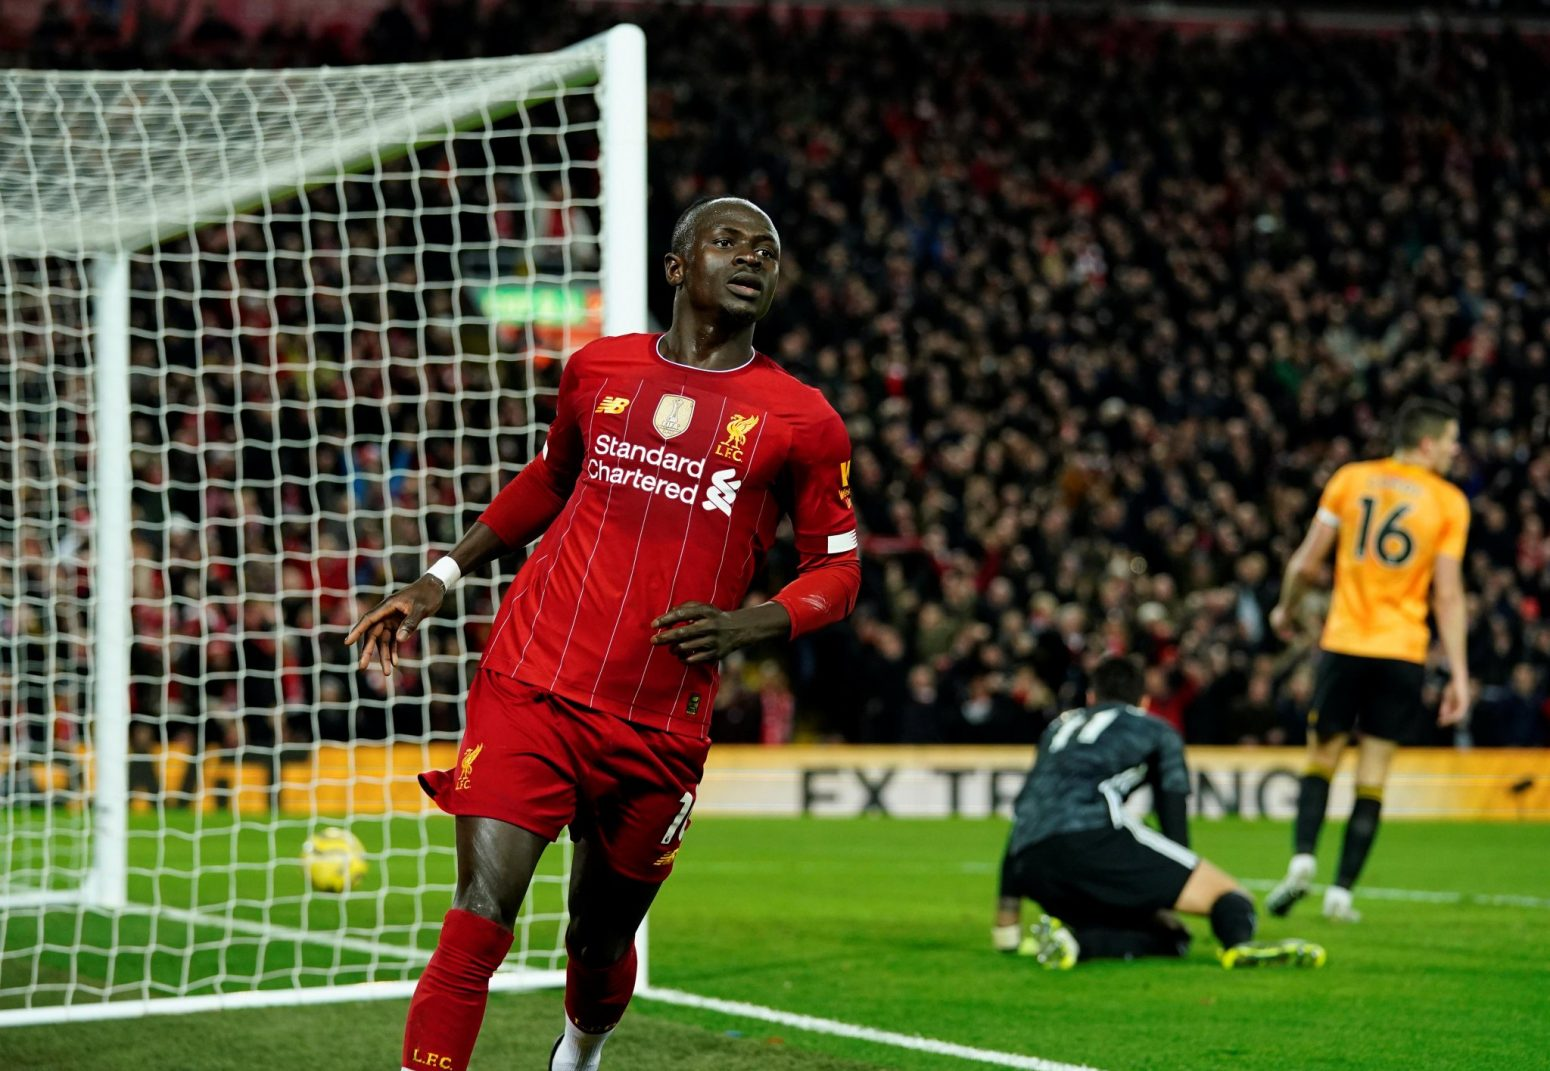 Liverpool 1-0 Wolves – Highlights: Mane scores as Reds march on (Video)